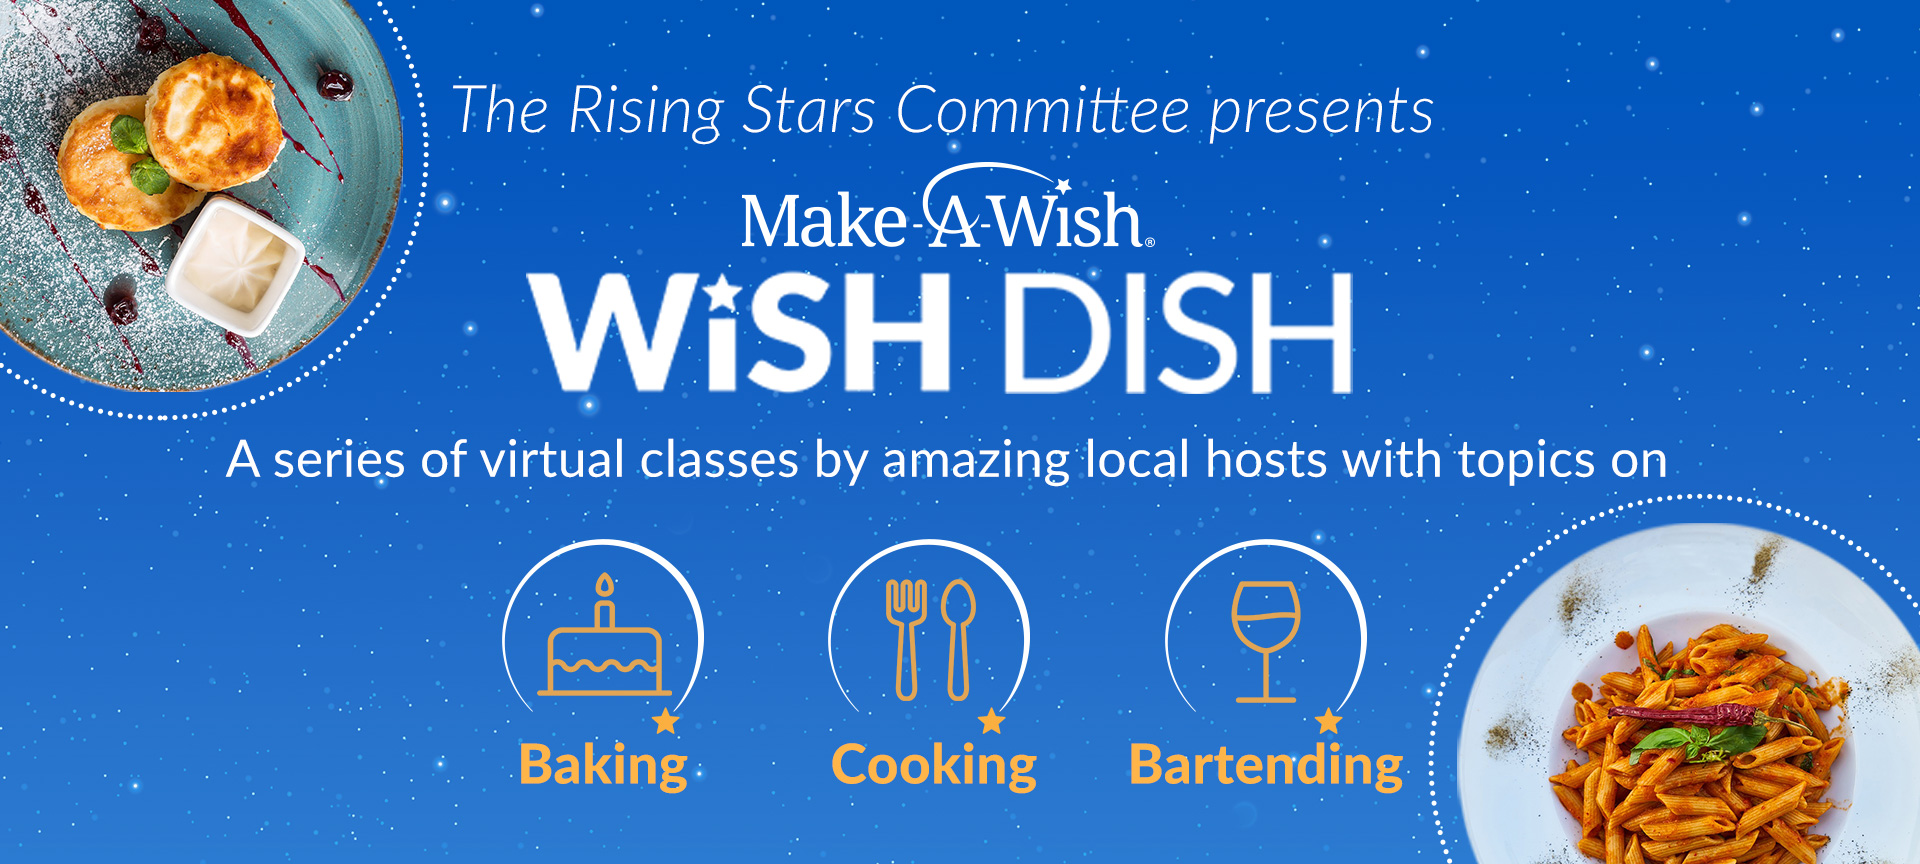 Wish-Dish-Website-Banner